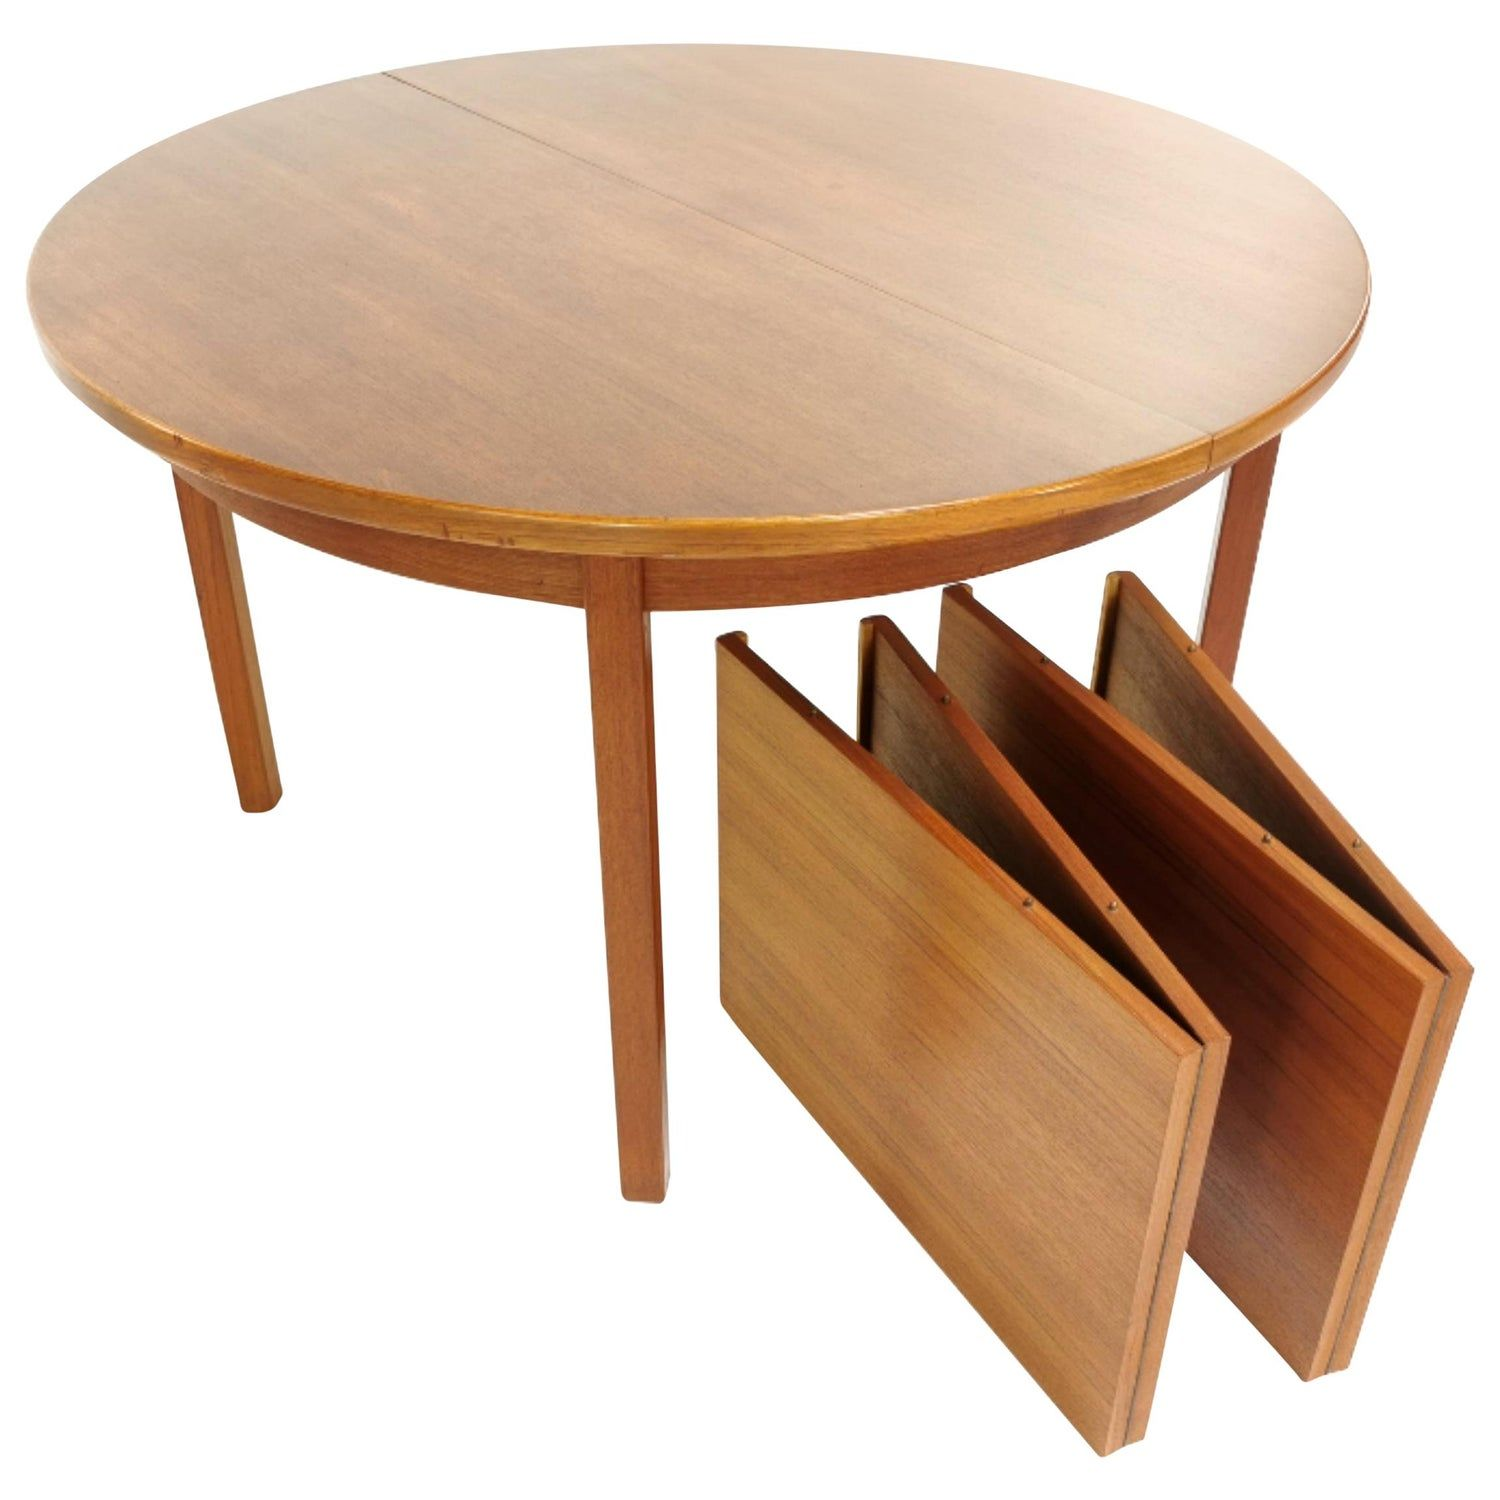 Danish Round Extendable Teak Dining Table 1960s Midcentury Vintage